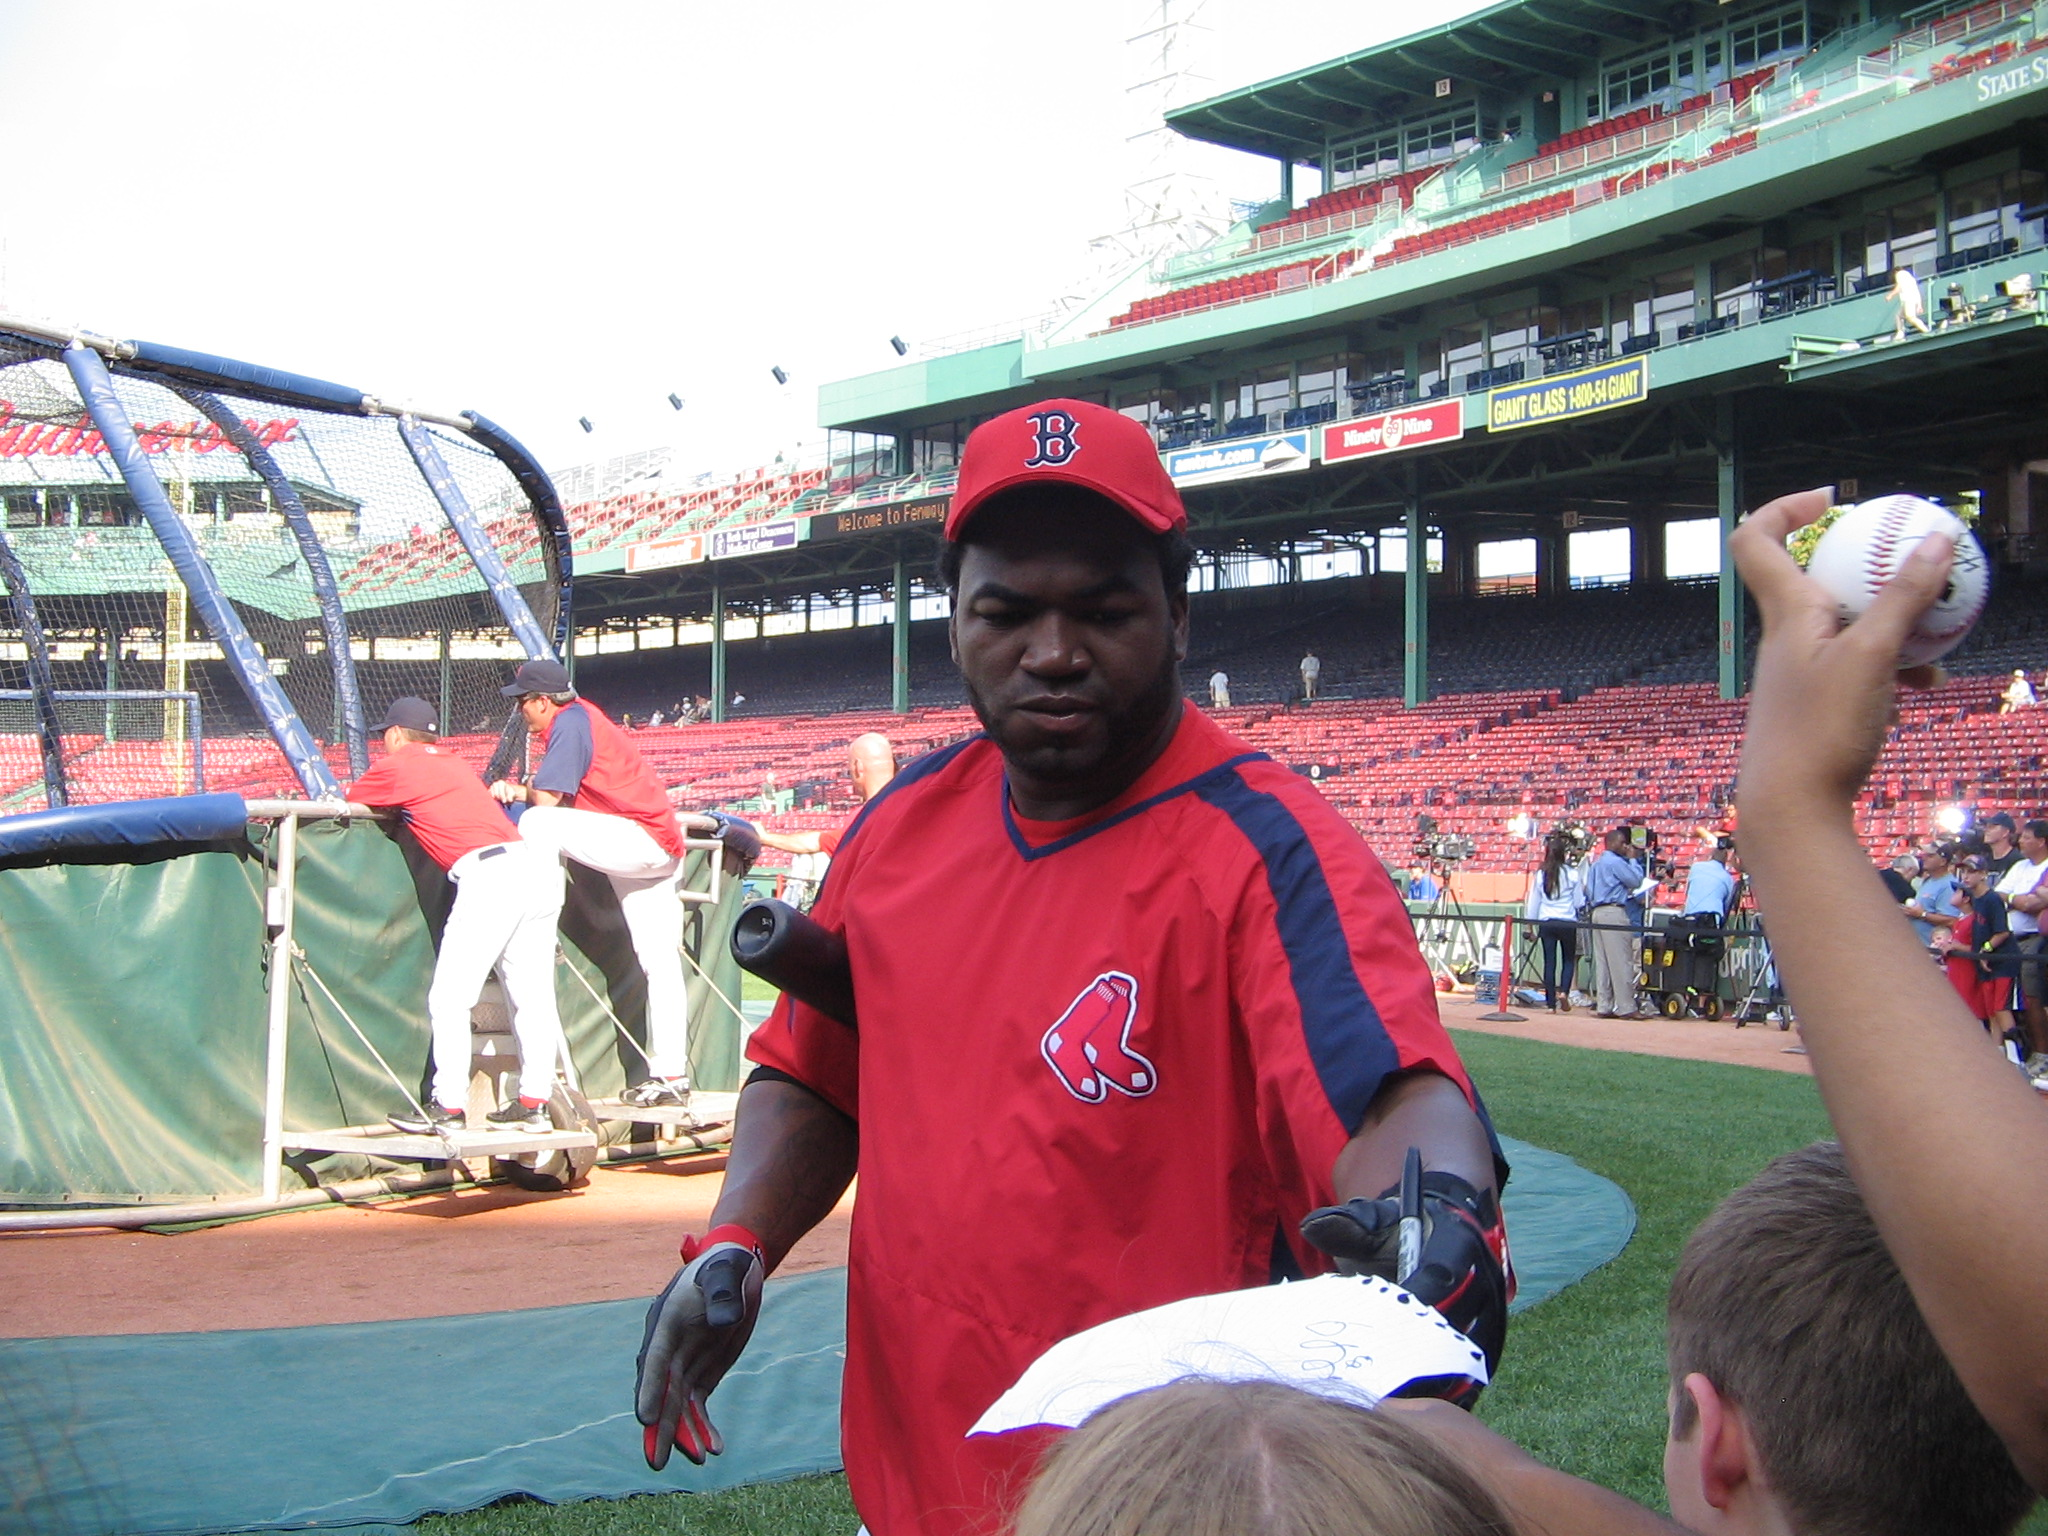 Red Sox's David Ortiz signs autographs prior to the game